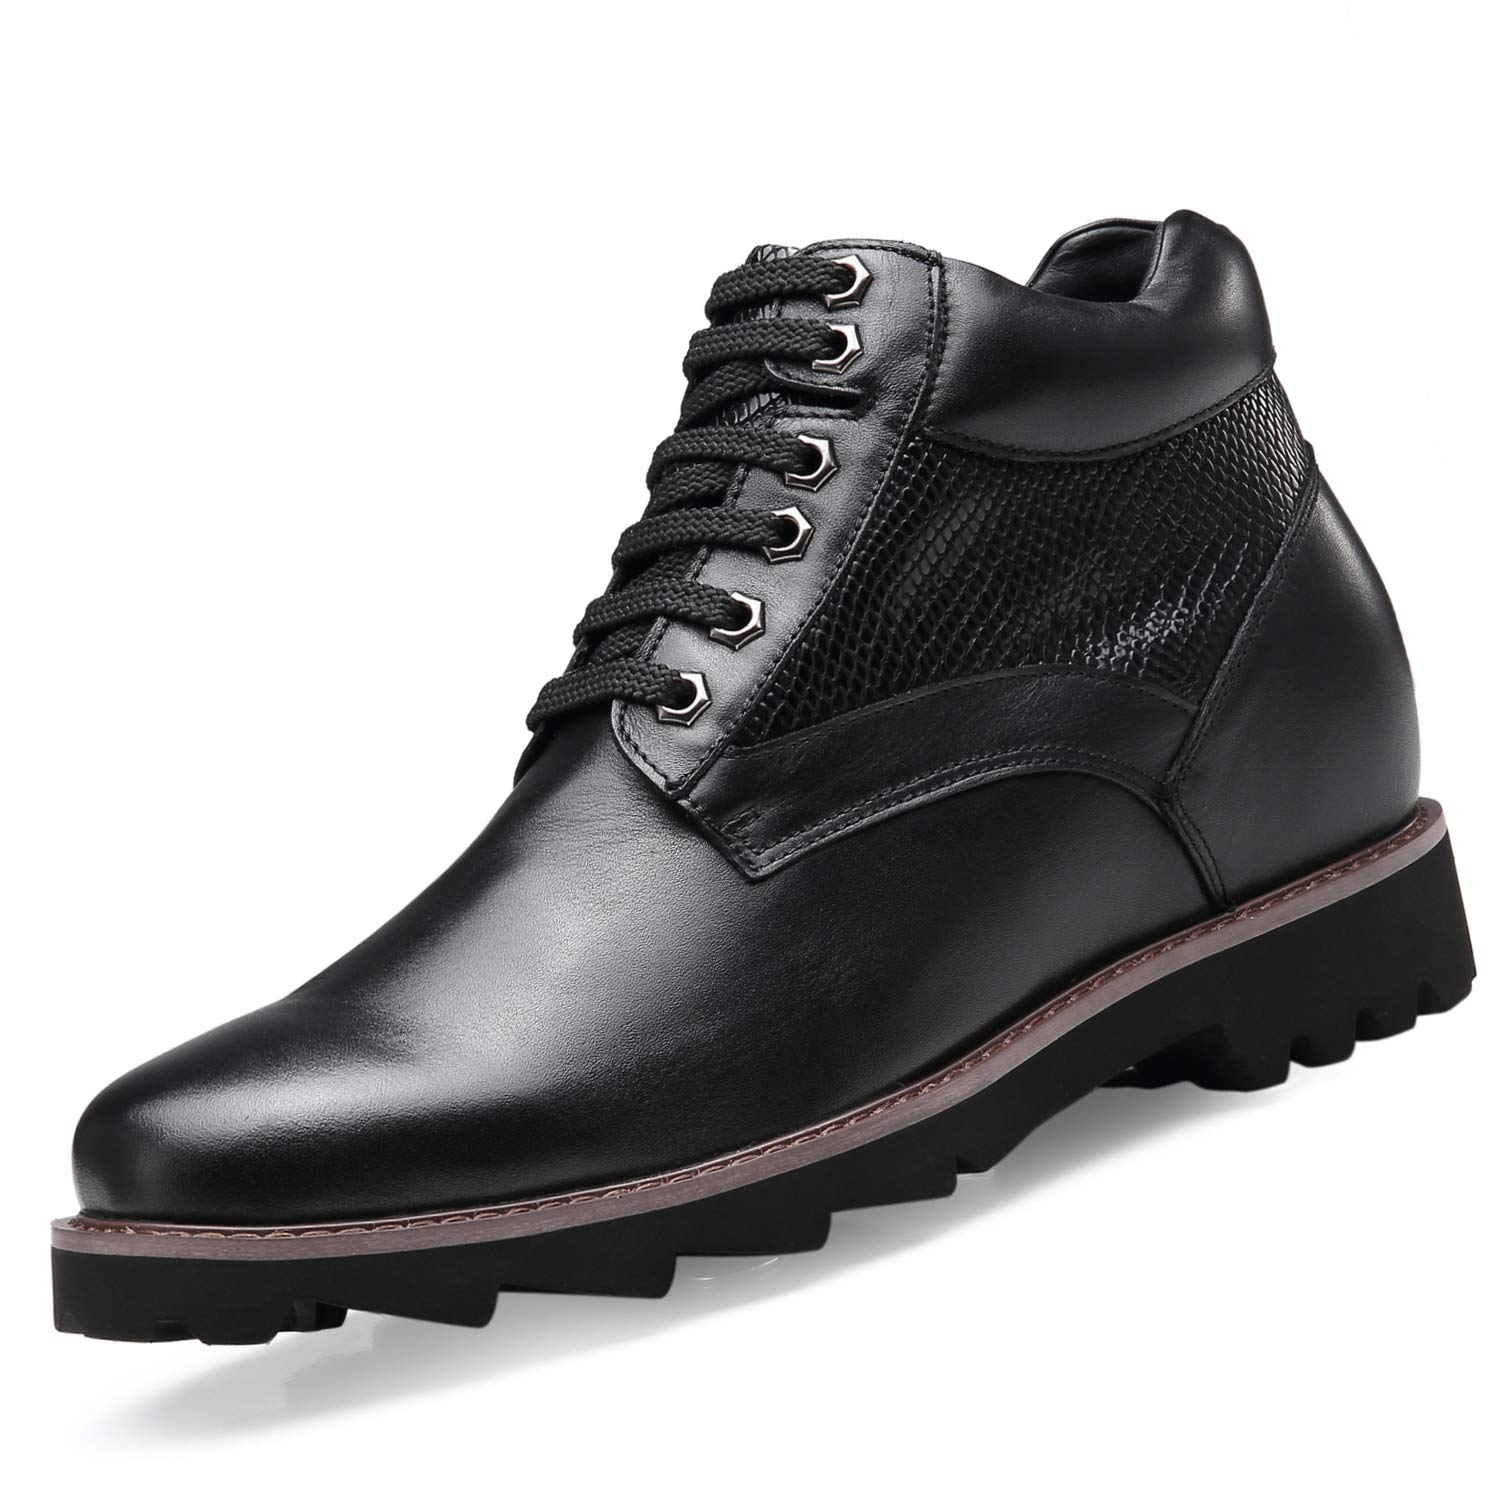 CHAMARIPA Height Increasing Elevator Shoes Tall Men Boots Black Leather 3.54 Inches Taller H91B35H091D